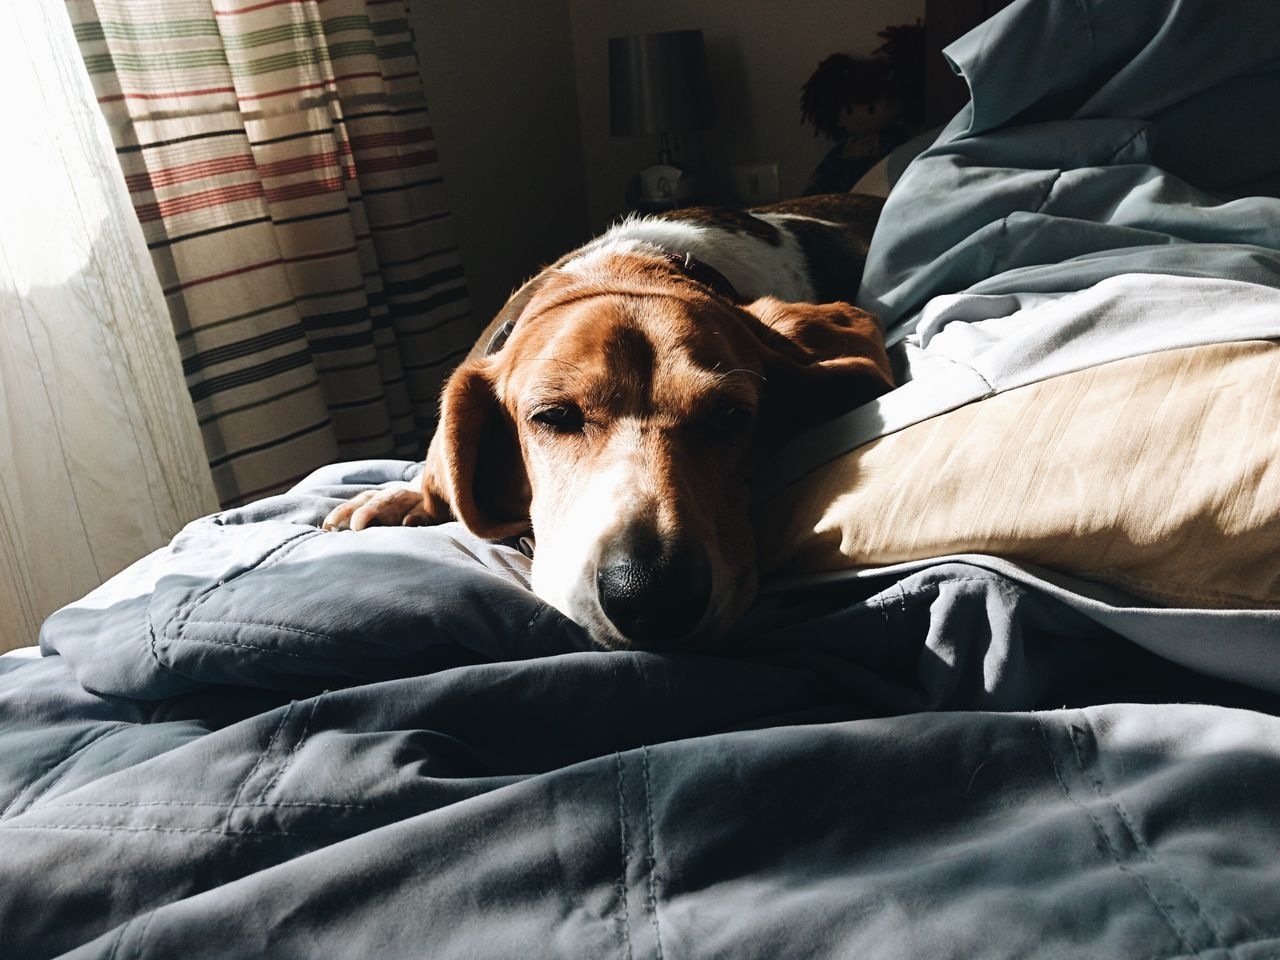 Qué haces ahí Dog Bed Pets Domestic Animals Mammal Relaxation Home Interior Indoors  Resting Animal Themes One Animal Bedroom Lying Down Comfortable Sheet No People Day Close-up Basset Hound